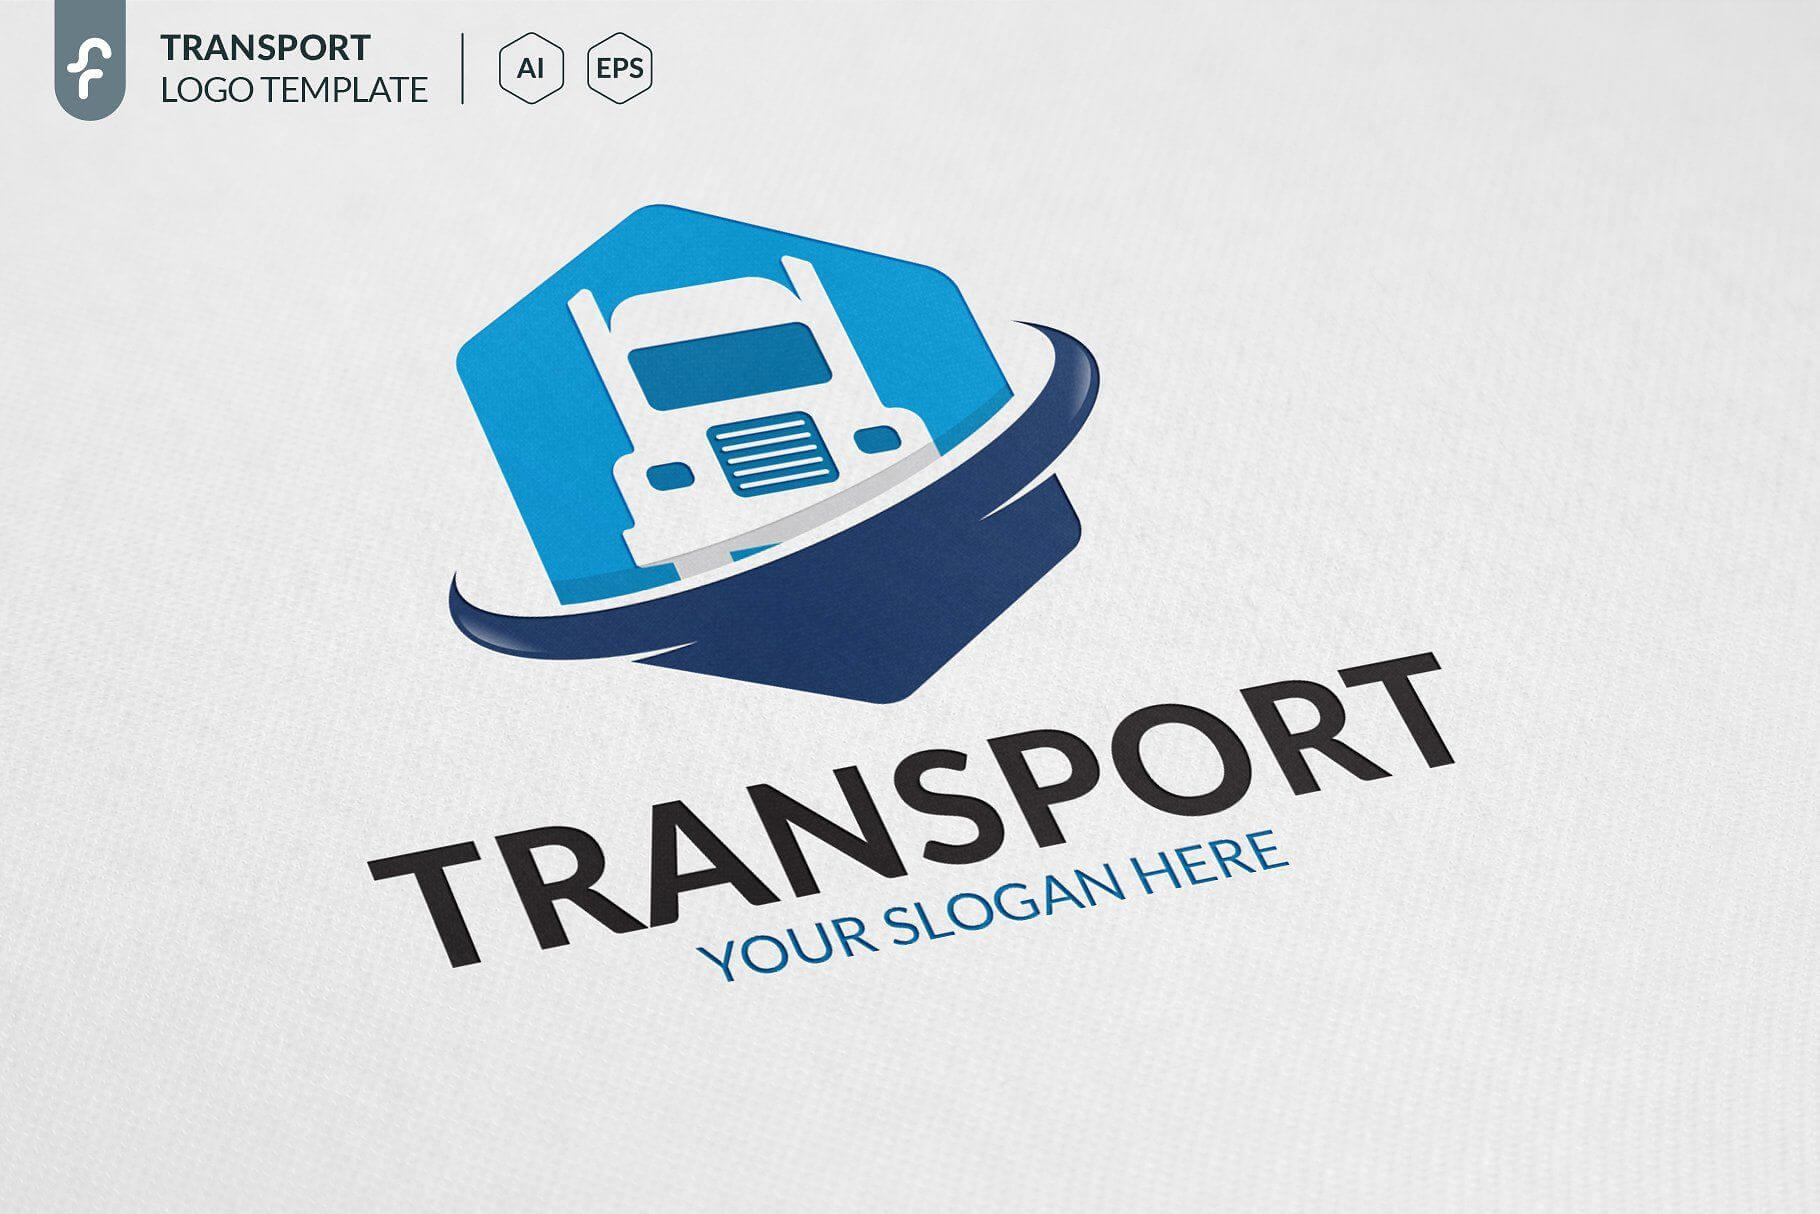 Transport Truck Logo #truck#transport#templates#logo | Free With Transport Business Cards Templates Free